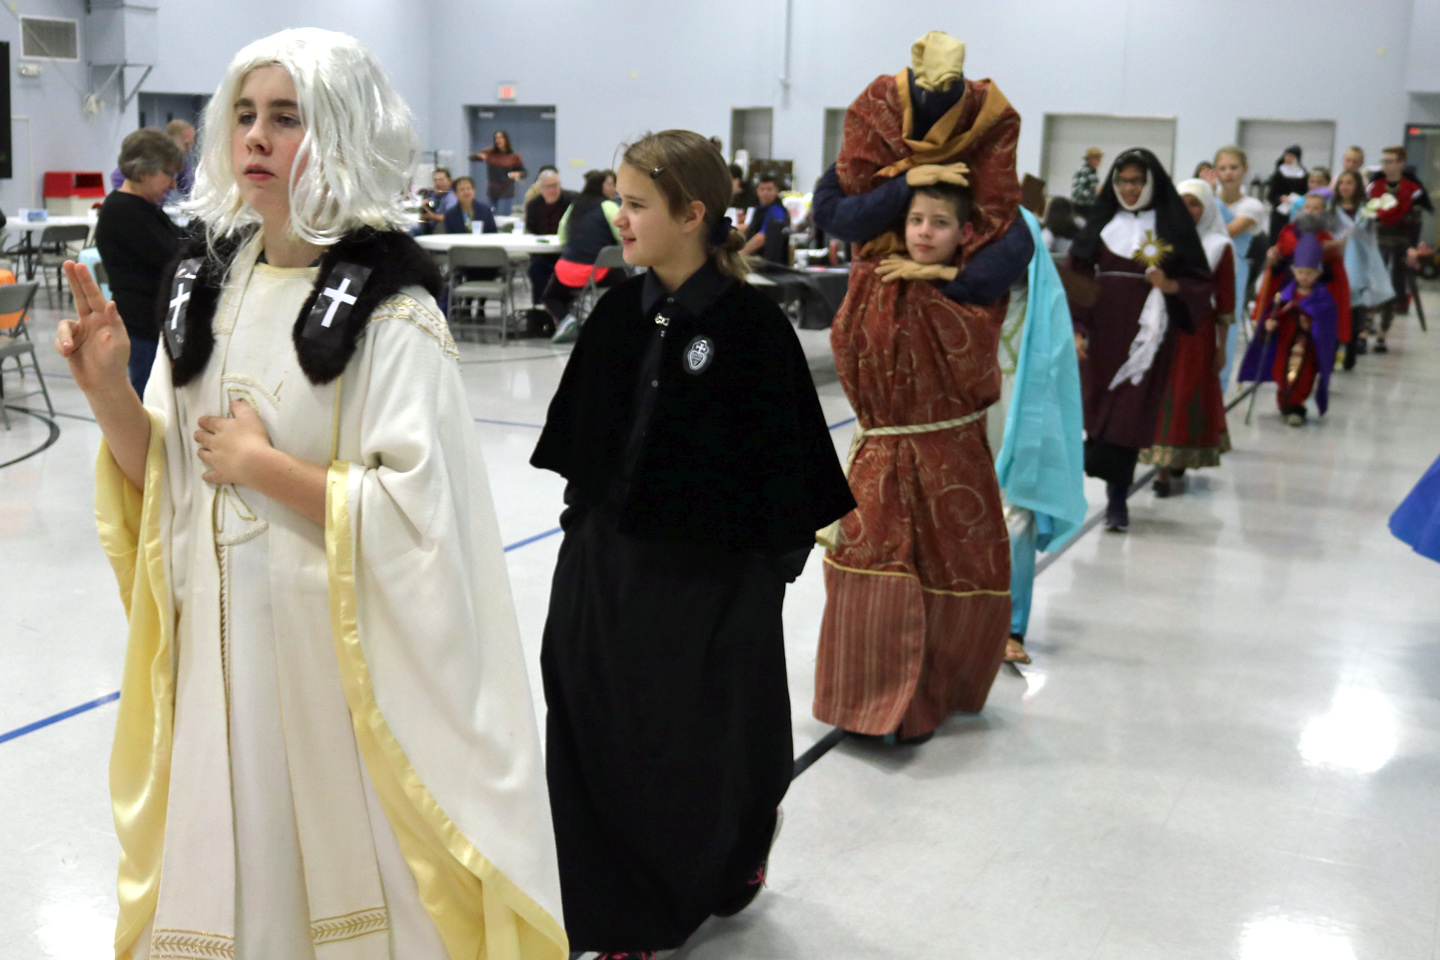 'SAINTS GO MARCHING IN'—The 'saints go marching in' at St. Joseph the Worker in Ozark for the enjoyment of parishioners and judges' viewing before awards were given for best costumes on Nov. 1. (Photo by J.B. Kelly/The Mirror)